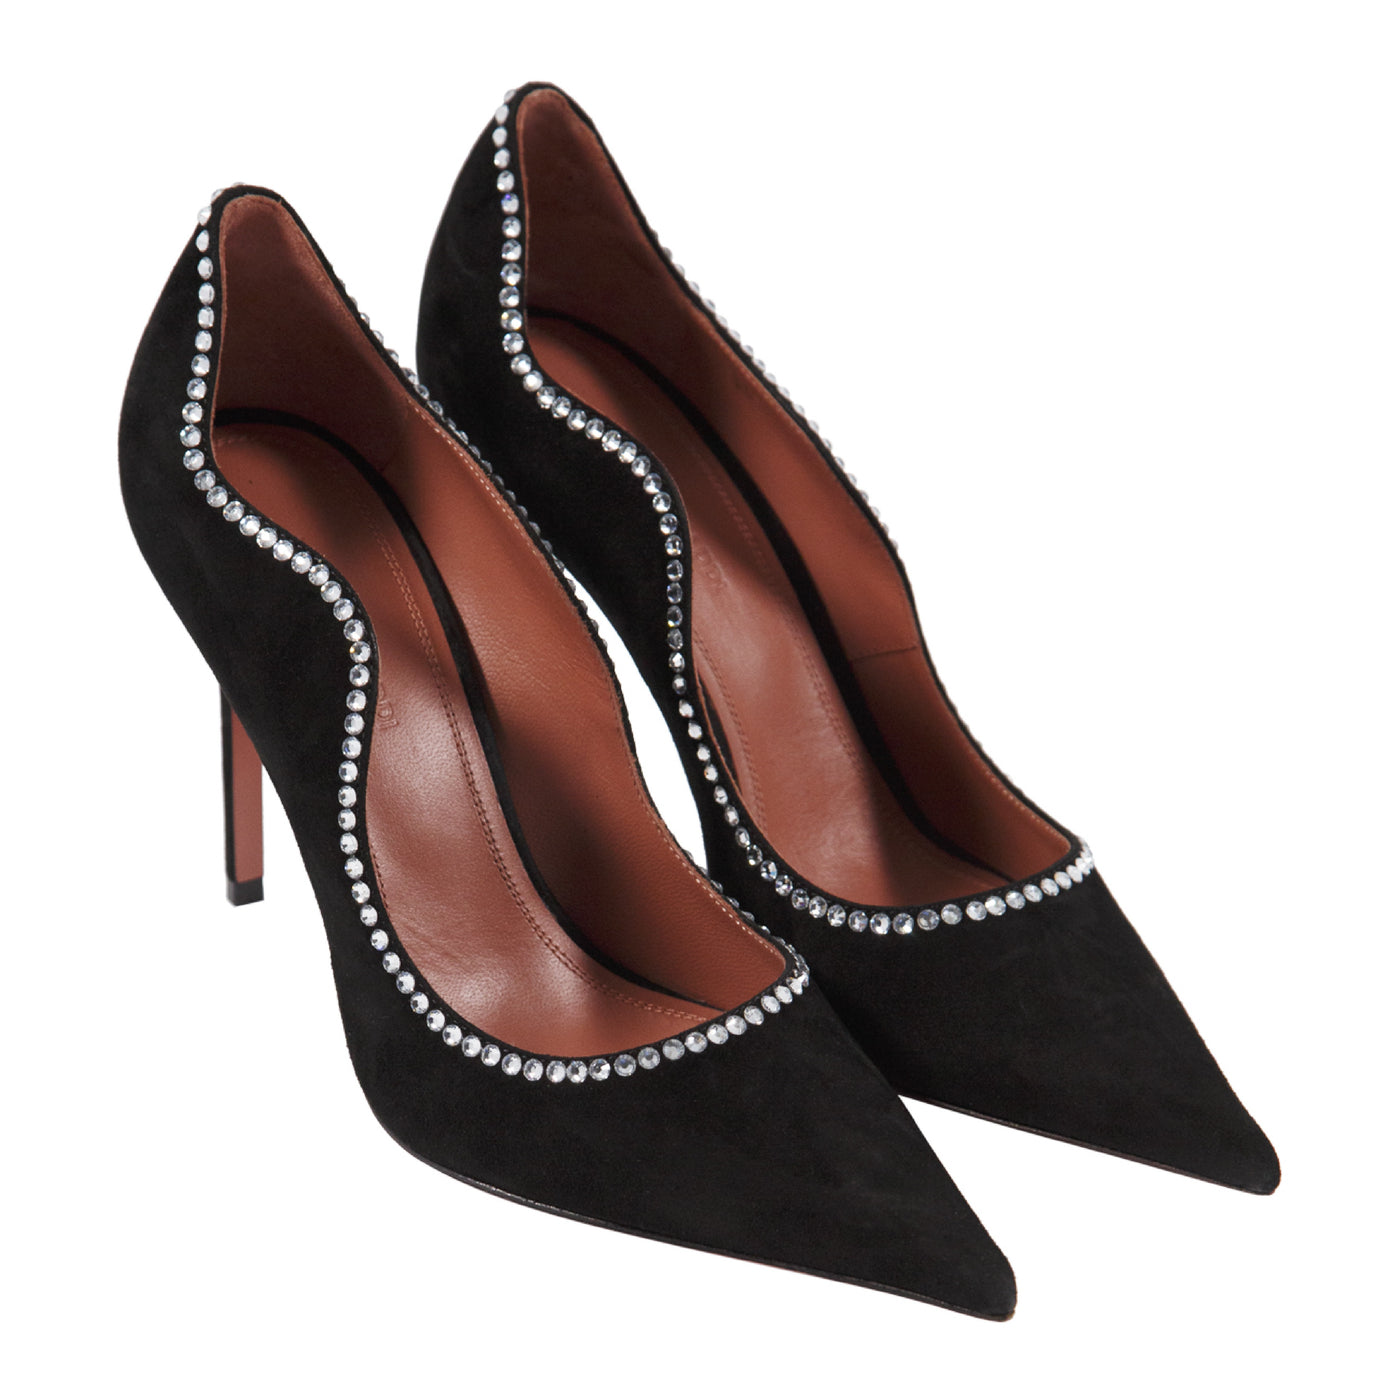 Load image into Gallery viewer, AMINA MUADDI ROMY PUMP CRYSTAL SUEDE BLACK WHITE HEEL 105MM BLACK